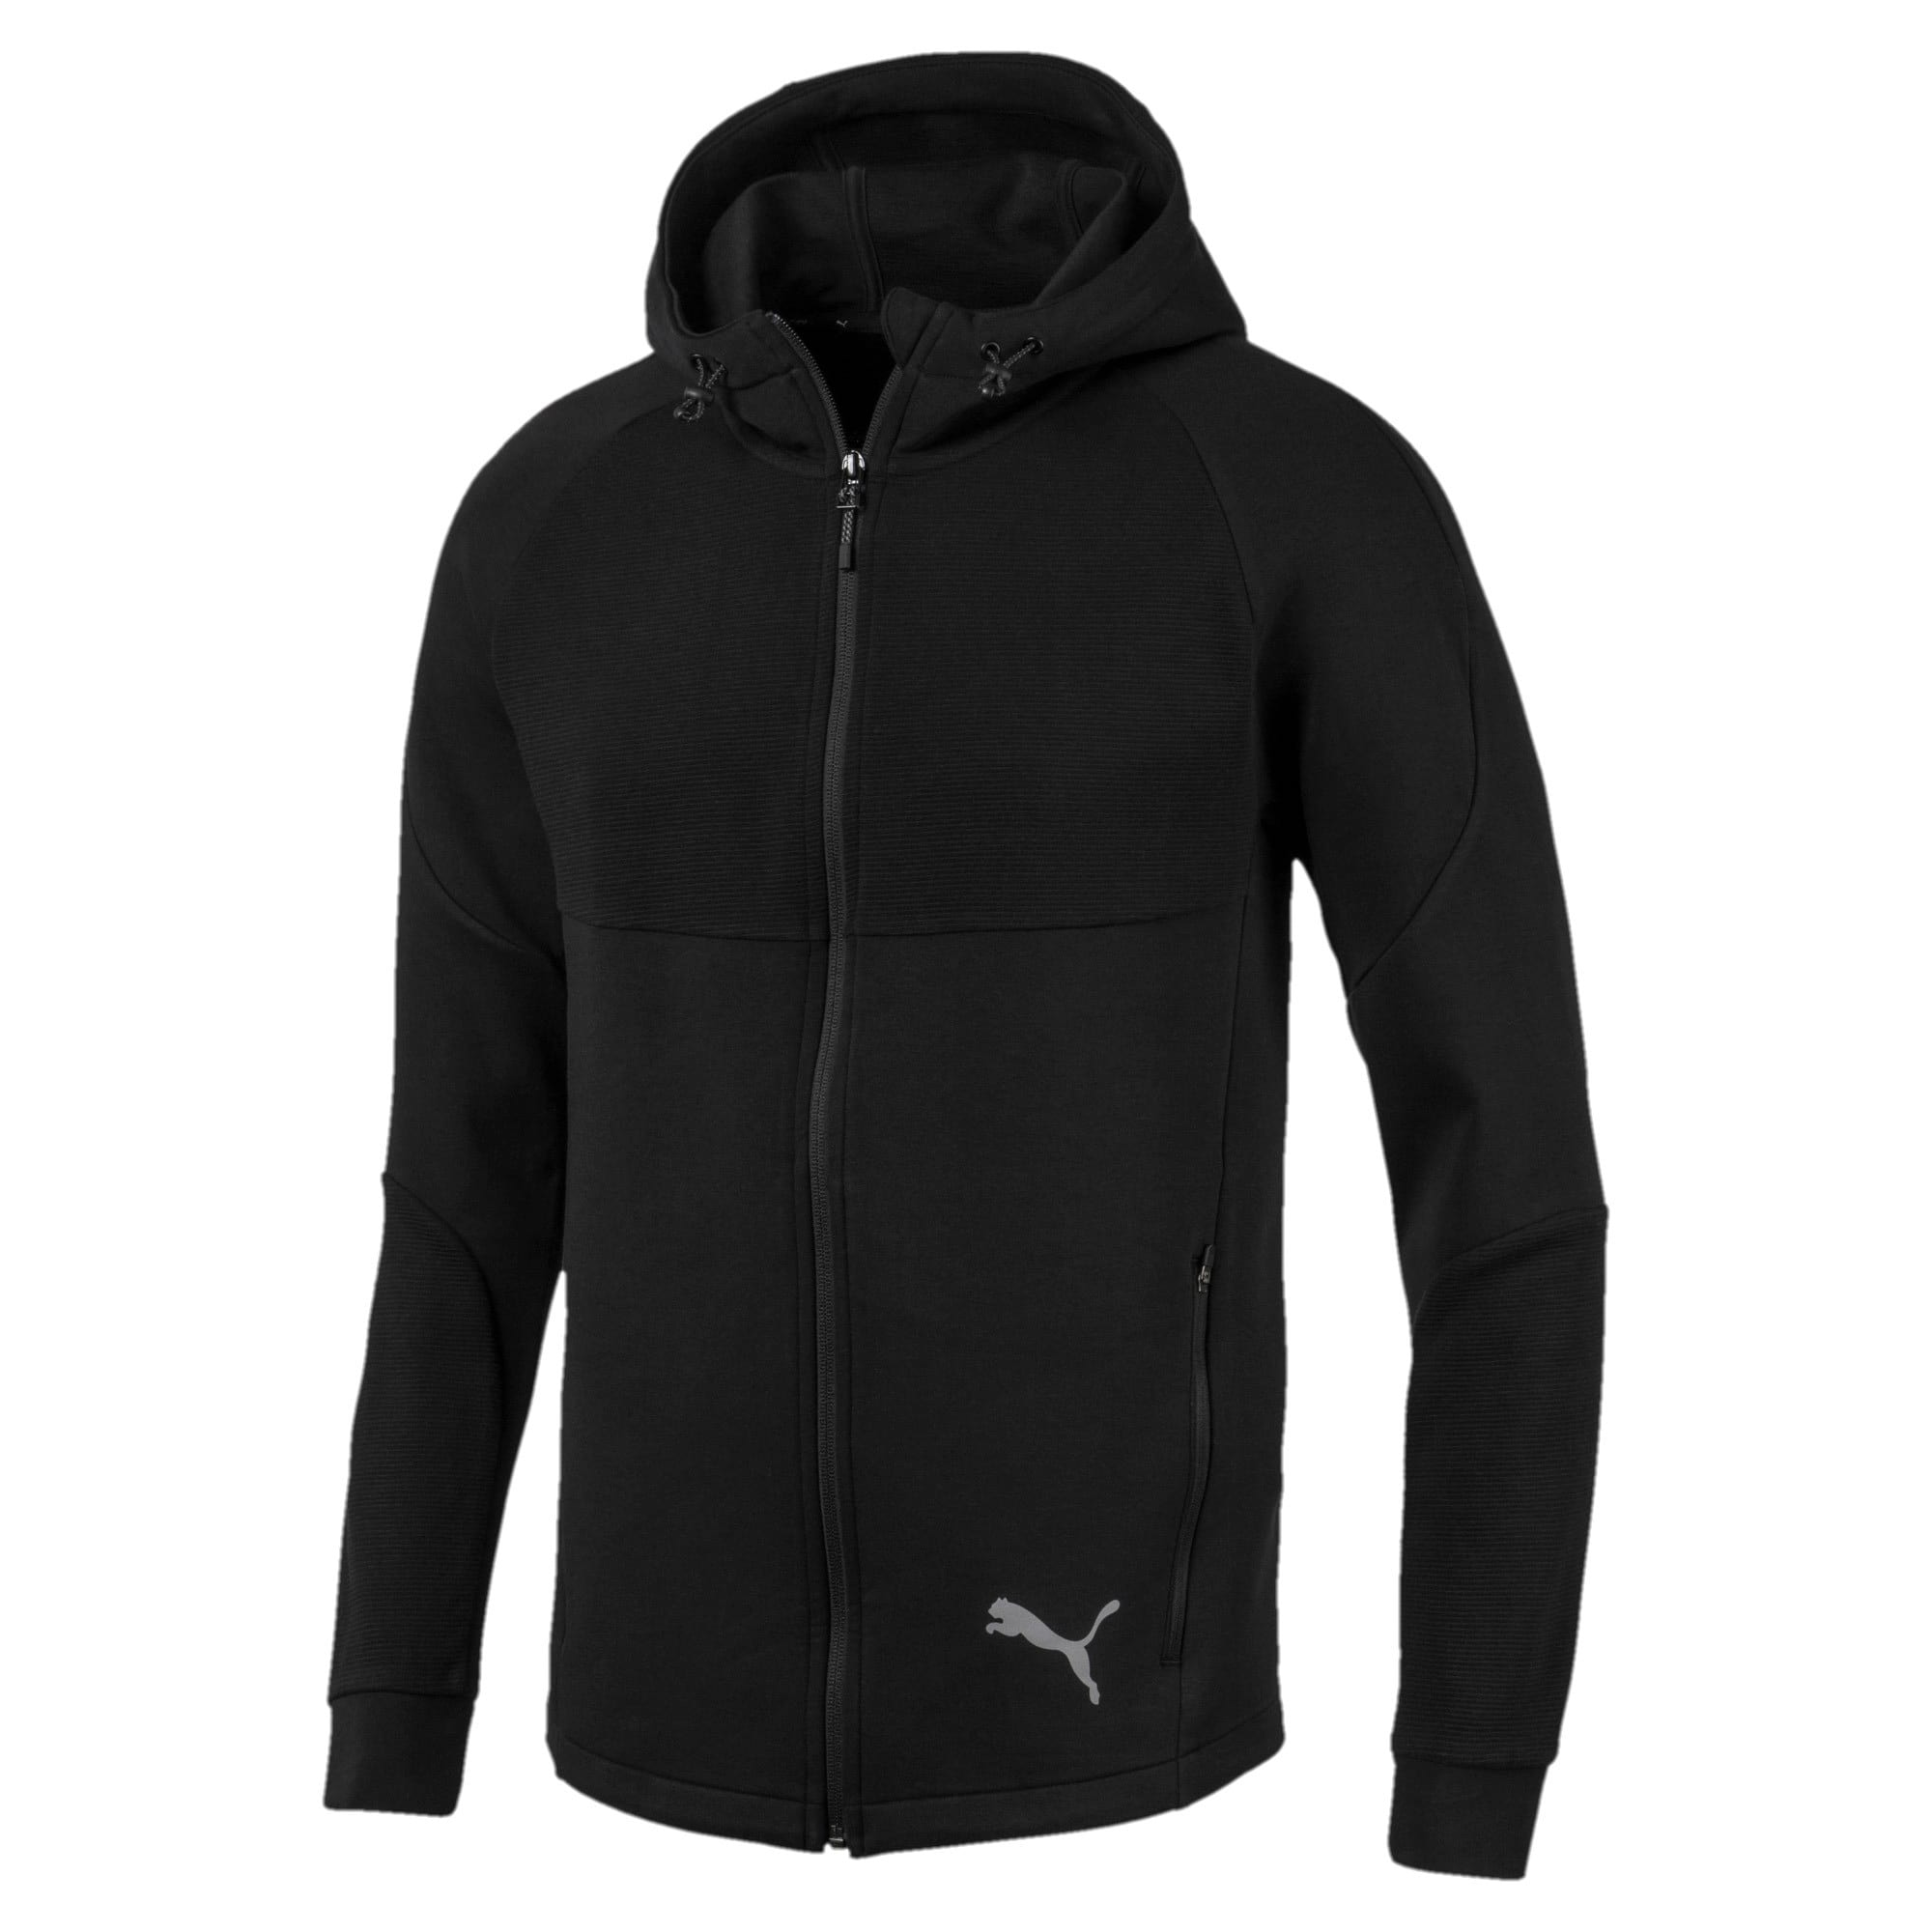 Thumbnail 4 of Evostripe Full Zip Men's Hoodie, Puma Black, medium